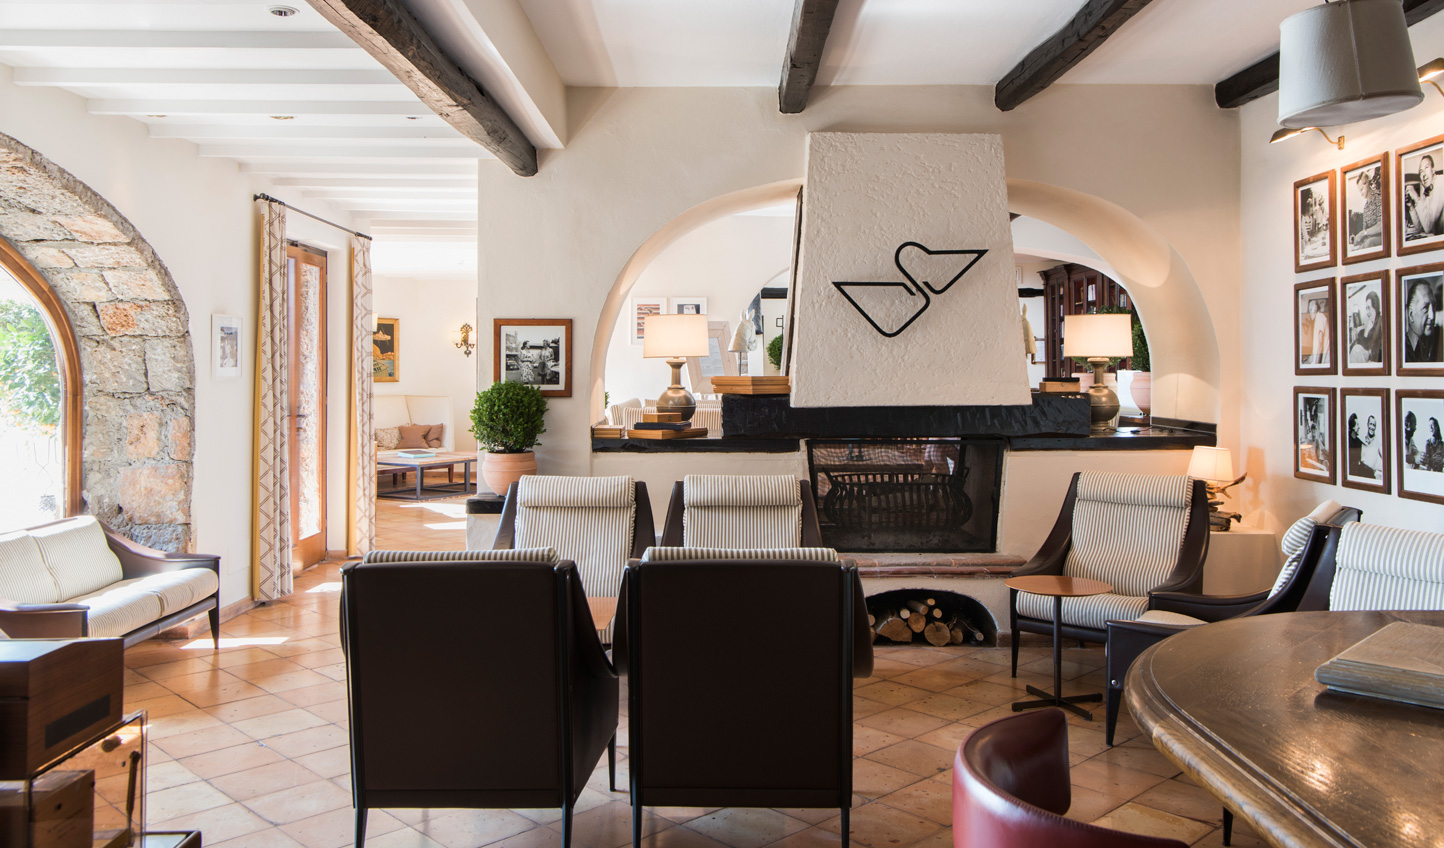 Chic and stylish, enjoy an aperitif in the bar